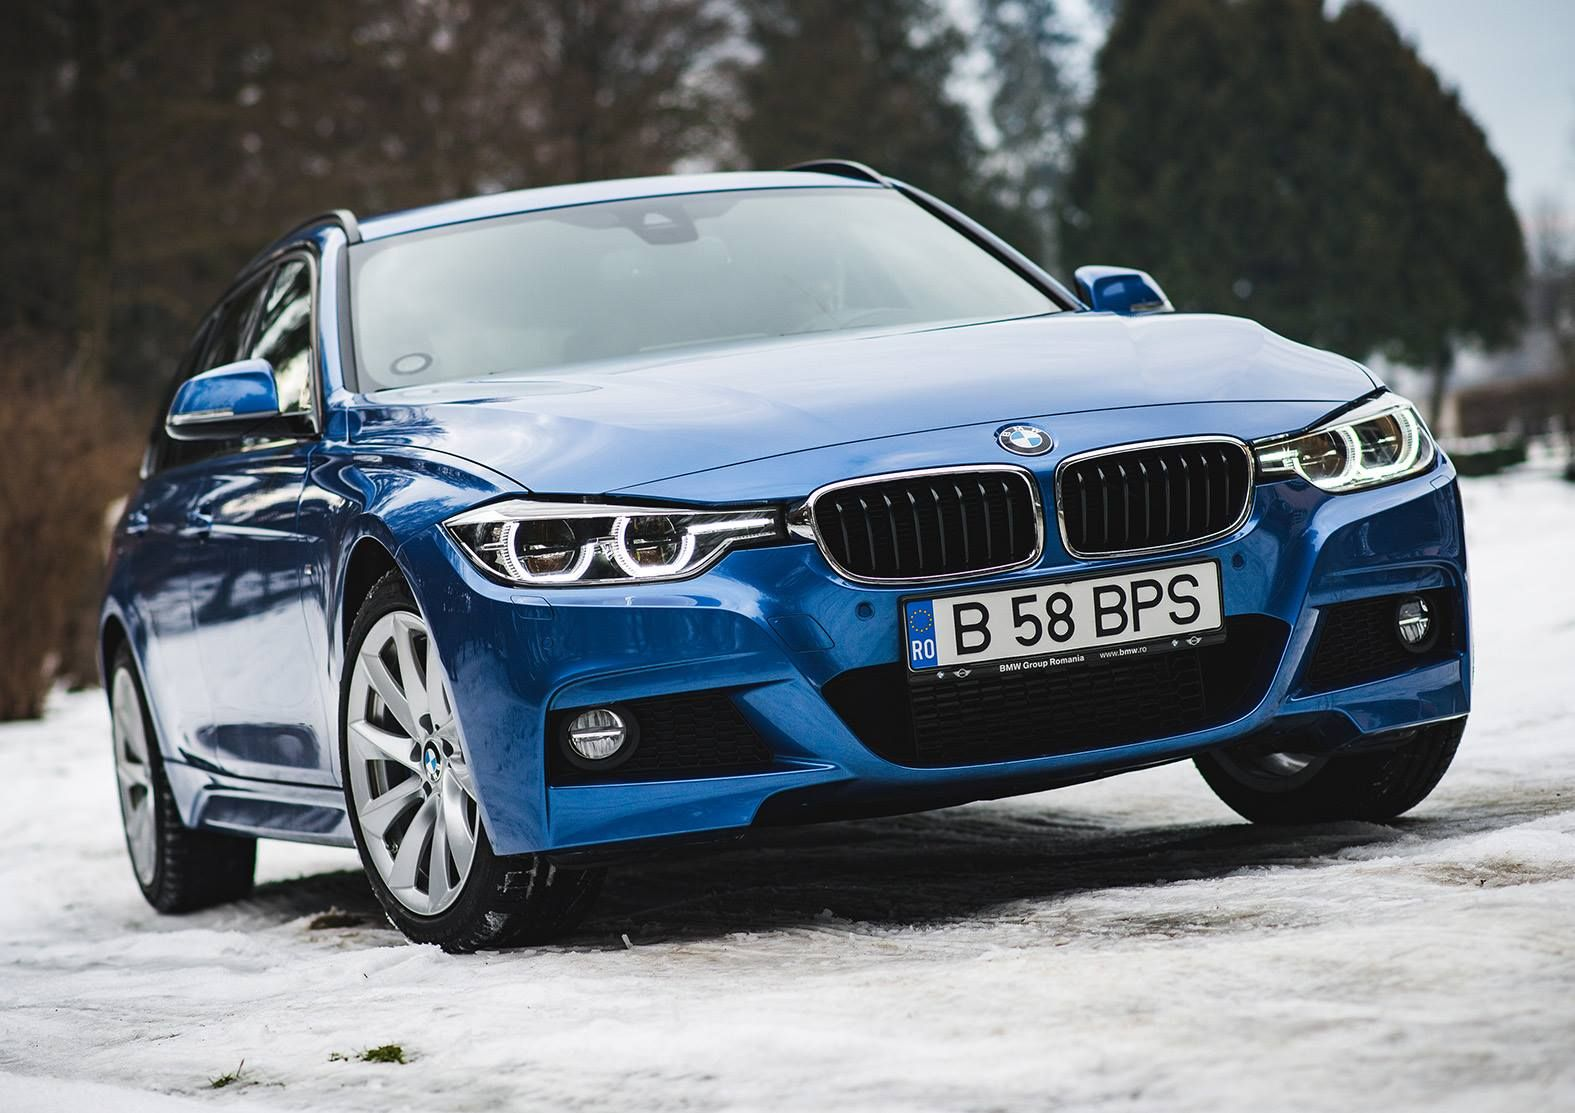 bmw f31 340i touring xdrive mpackage estoril blue winter snow bmw f31 3 series. Black Bedroom Furniture Sets. Home Design Ideas